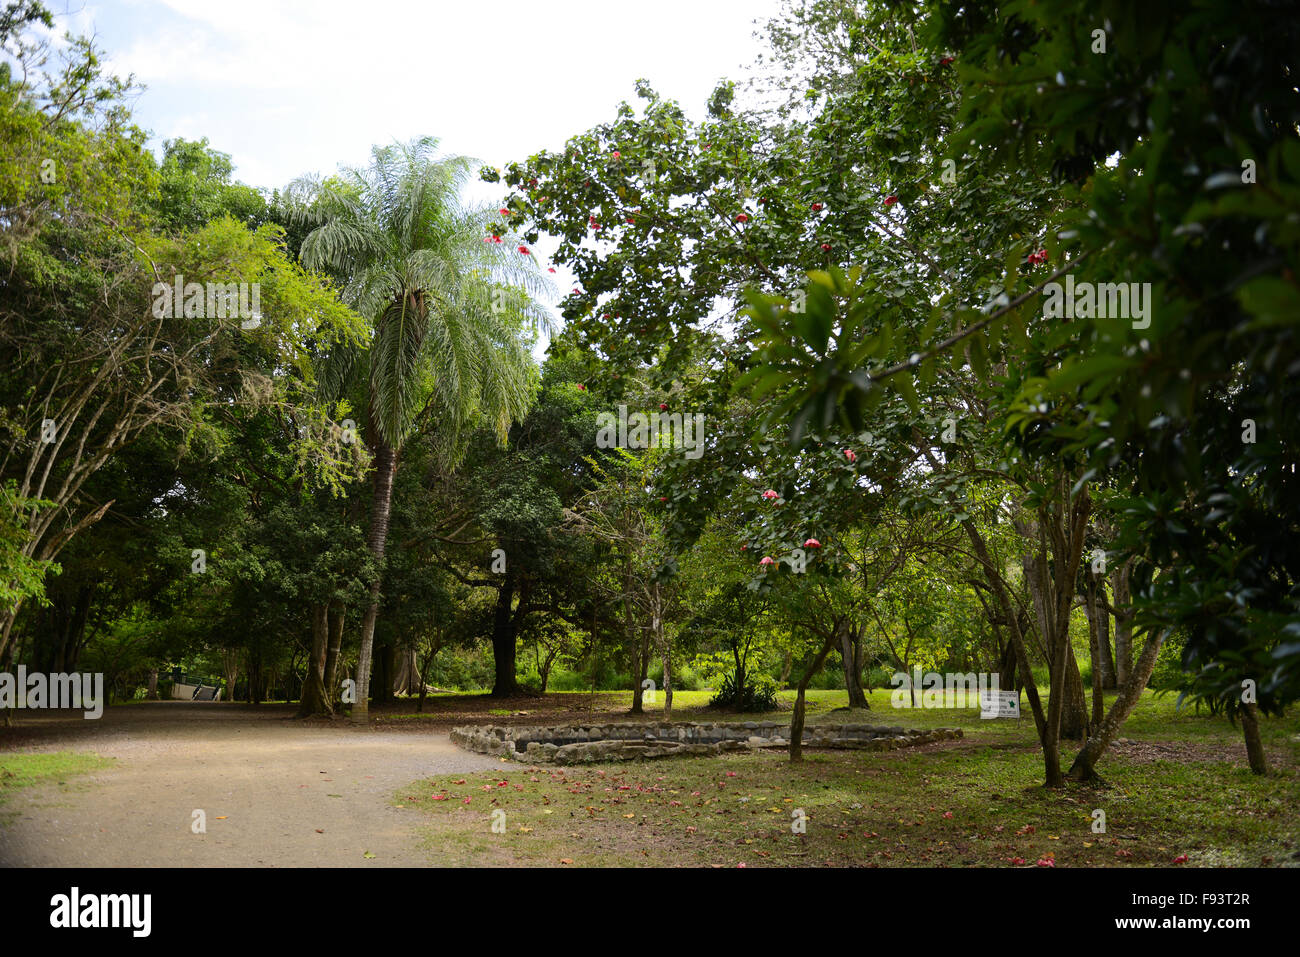 Tibes Indigenous Ceremonial Center. Ponce, Puerto Rico. Caribbean Island. USA territory - Stock Image